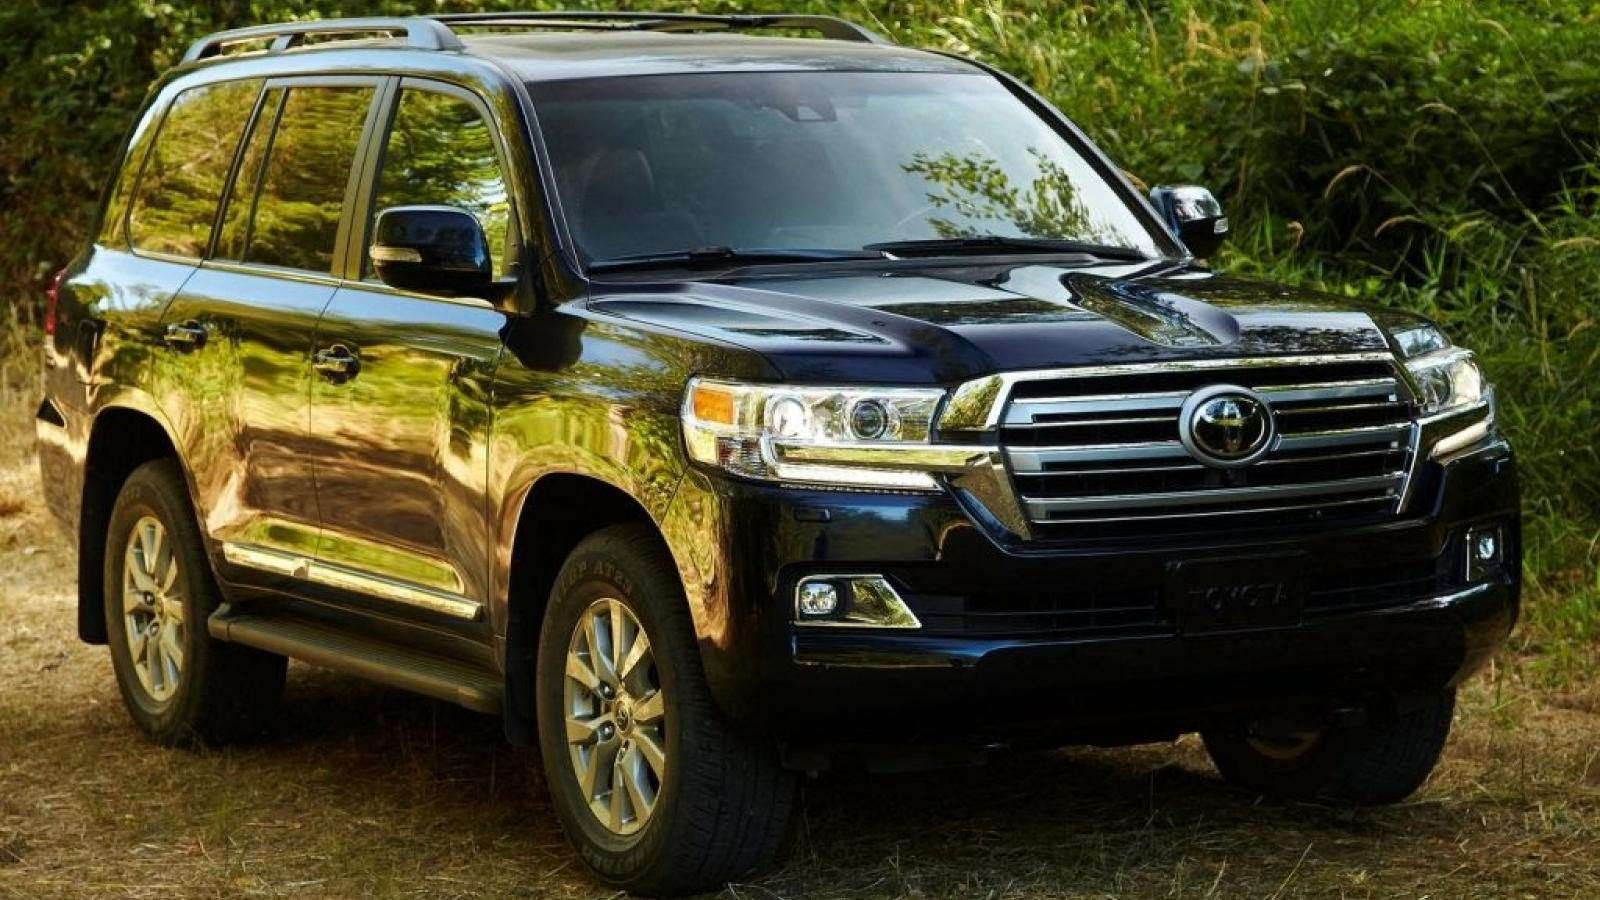 WATCH: An in-depth look into the history of the Land Cruiser as Toyota takes the wrap off the flagship SUV's 2022 model